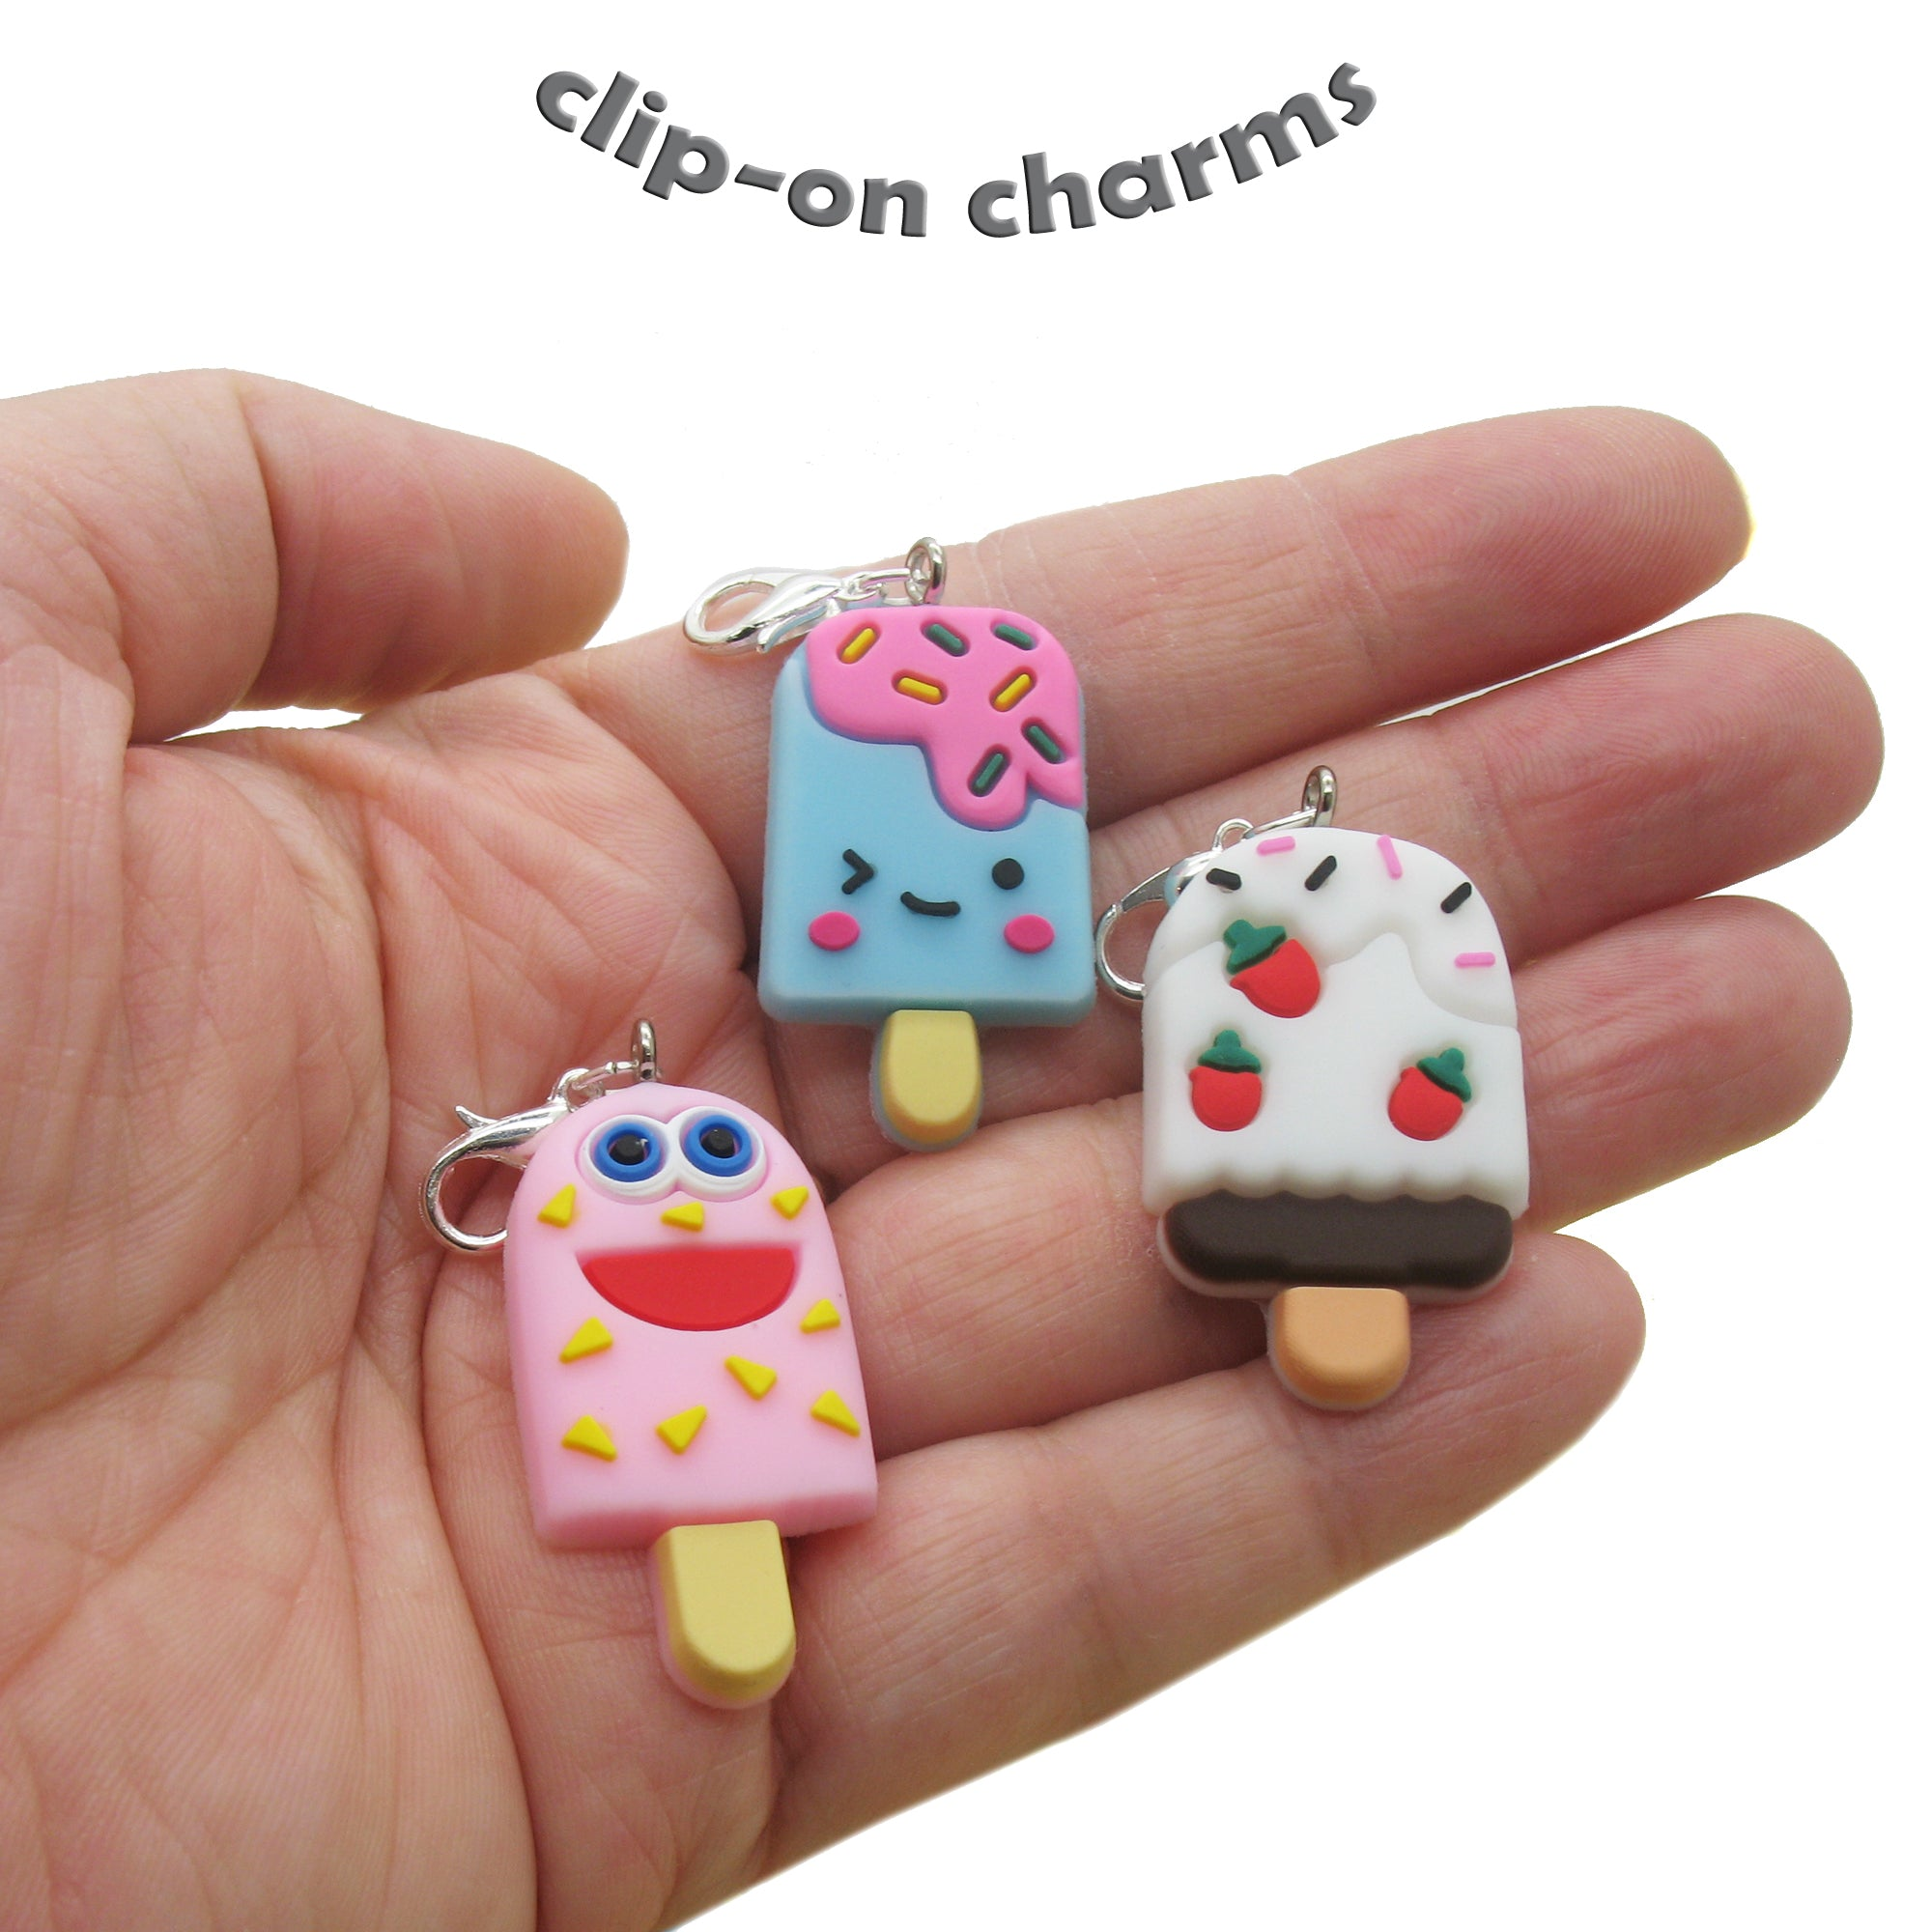 Ice Cream Clip-On Charms - Kawaii Cute Food Charms with Clasps - Adorabilities Charms